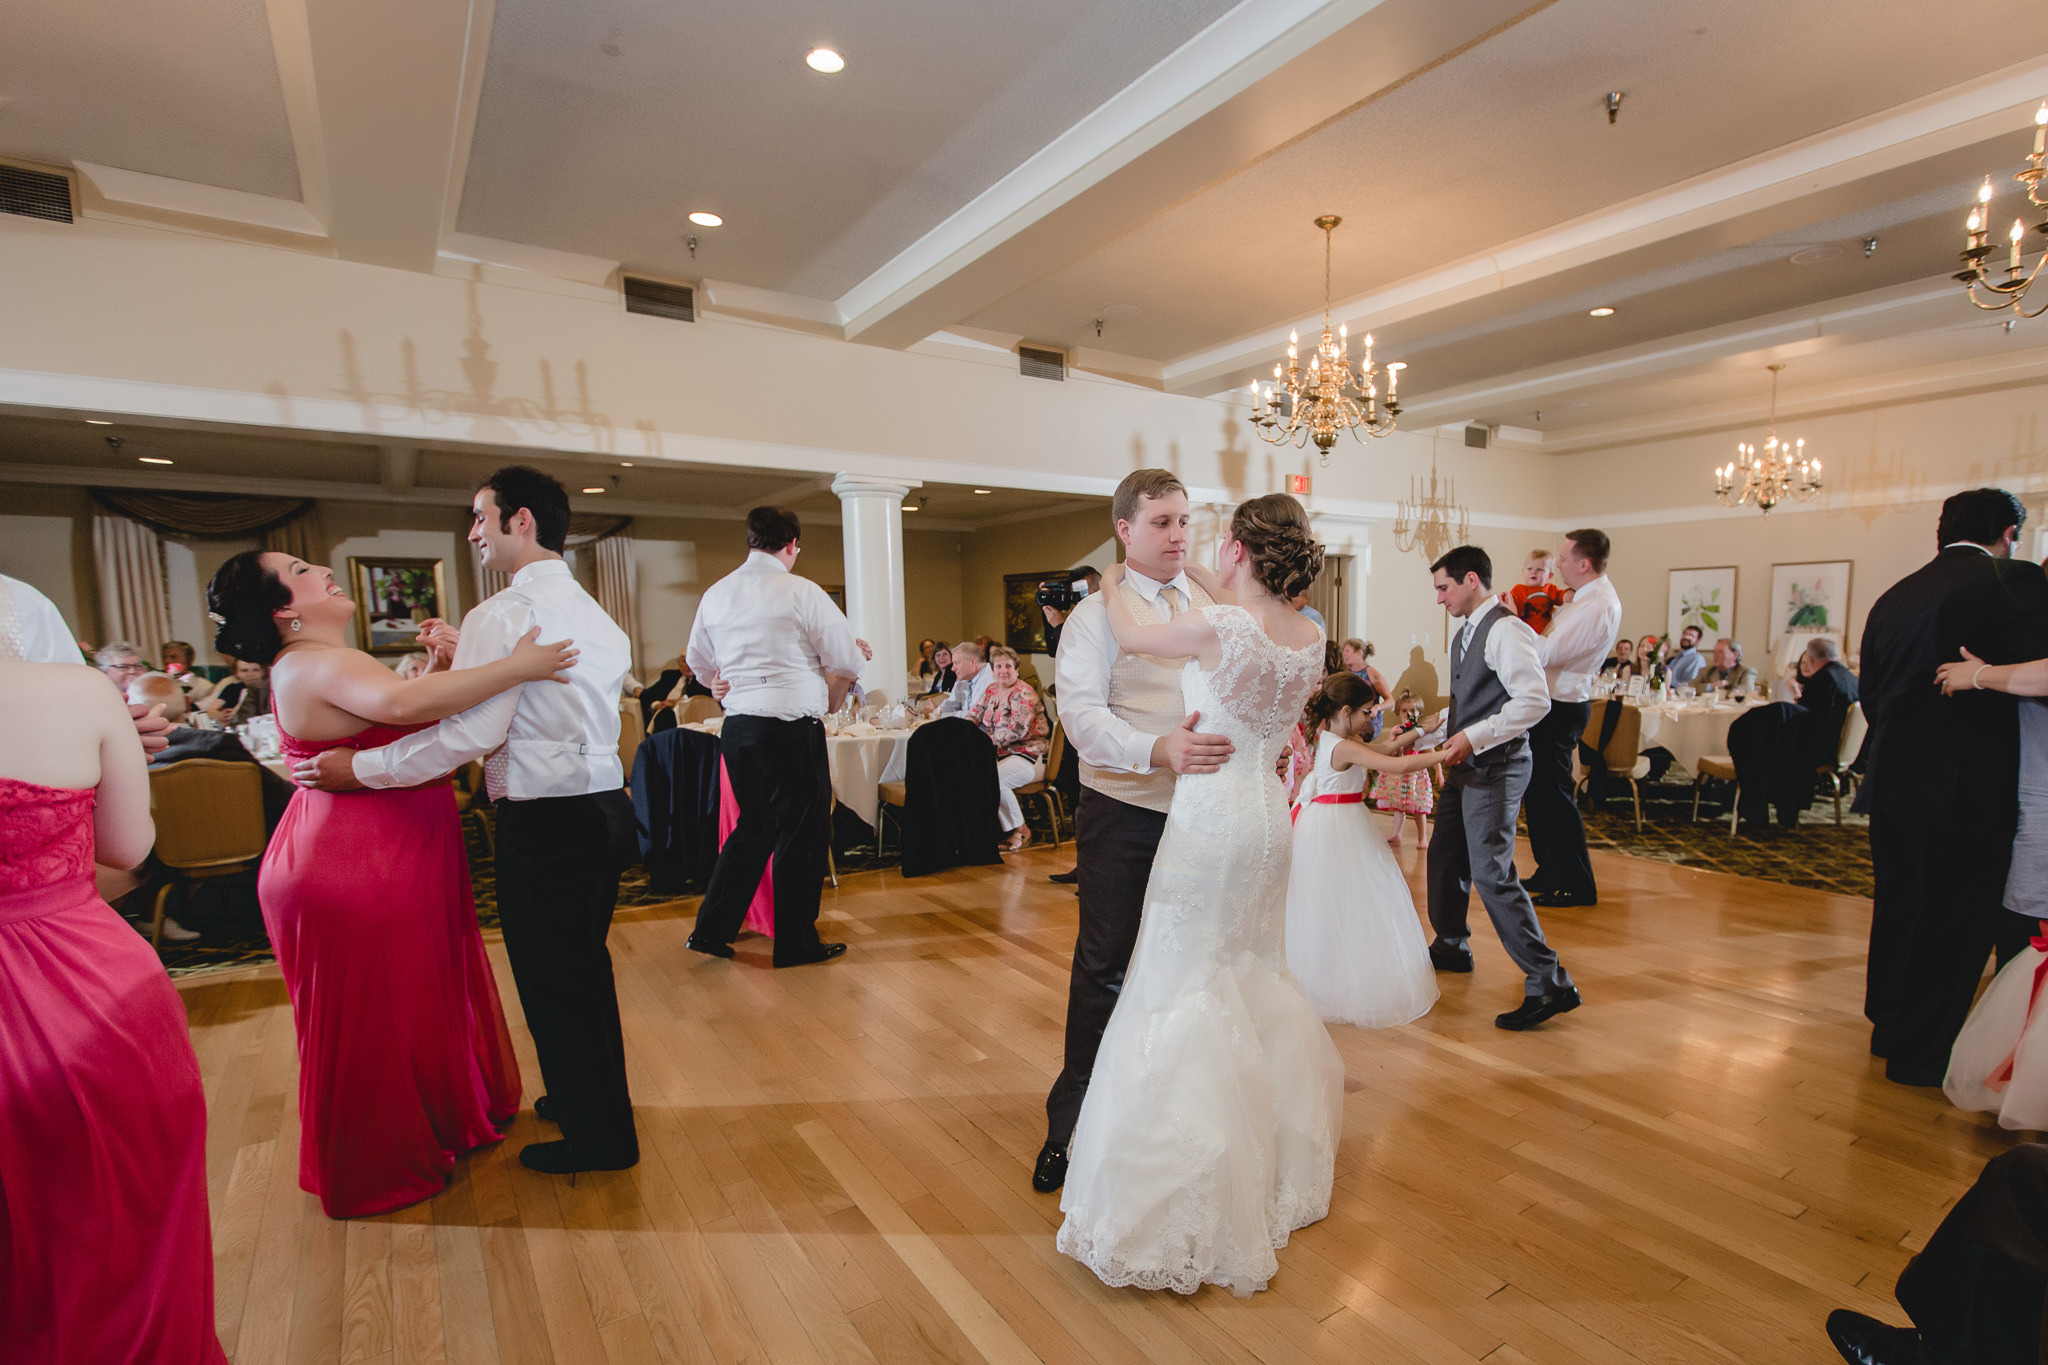 Bridal party dances at a Shannopin Country Club wedding reception